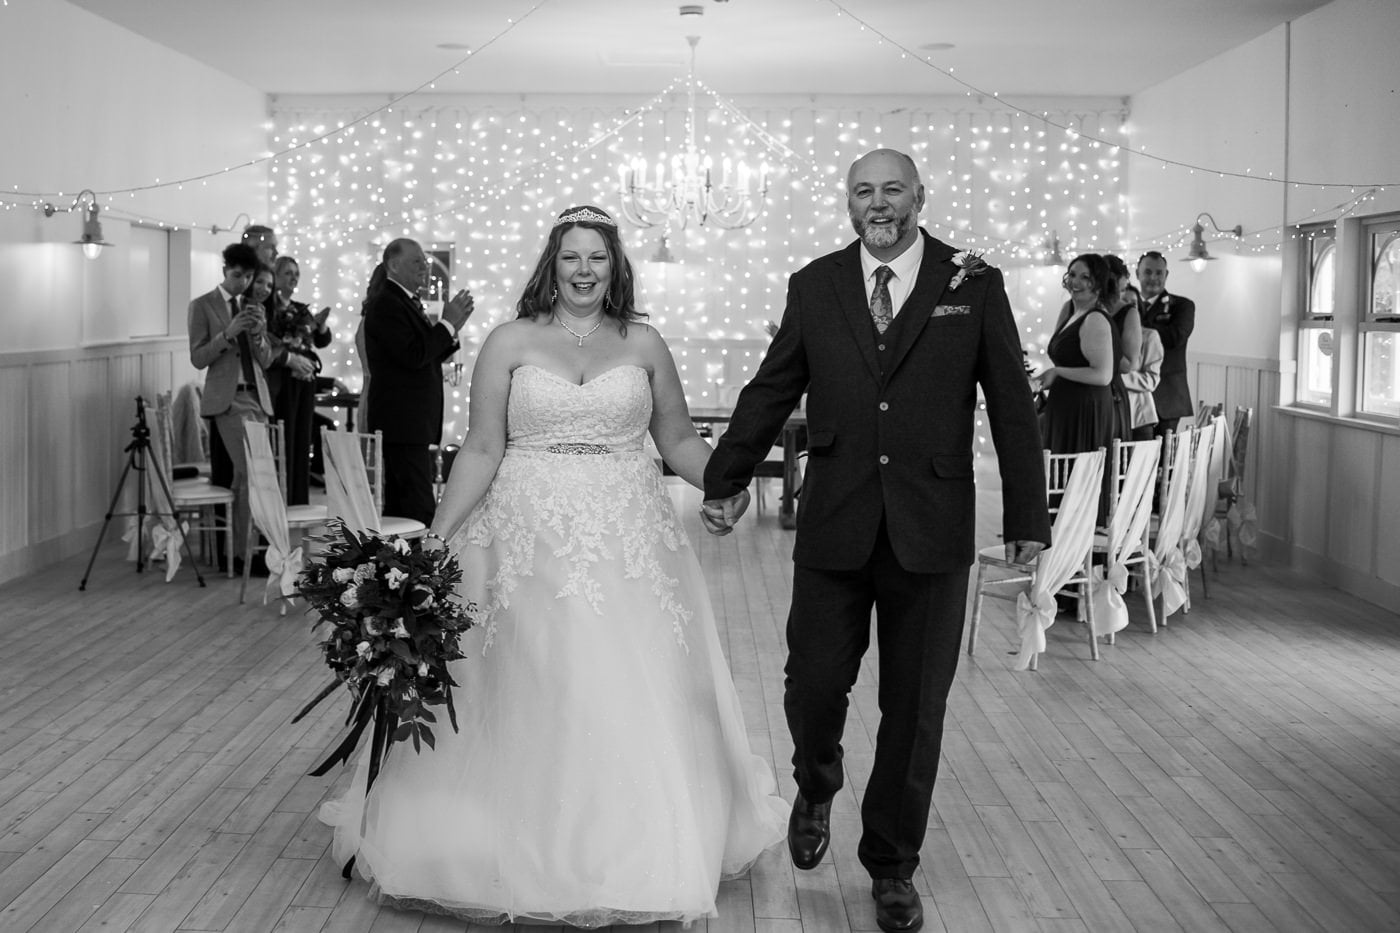 Kings Arms Wedding Photography of 15 person wedding